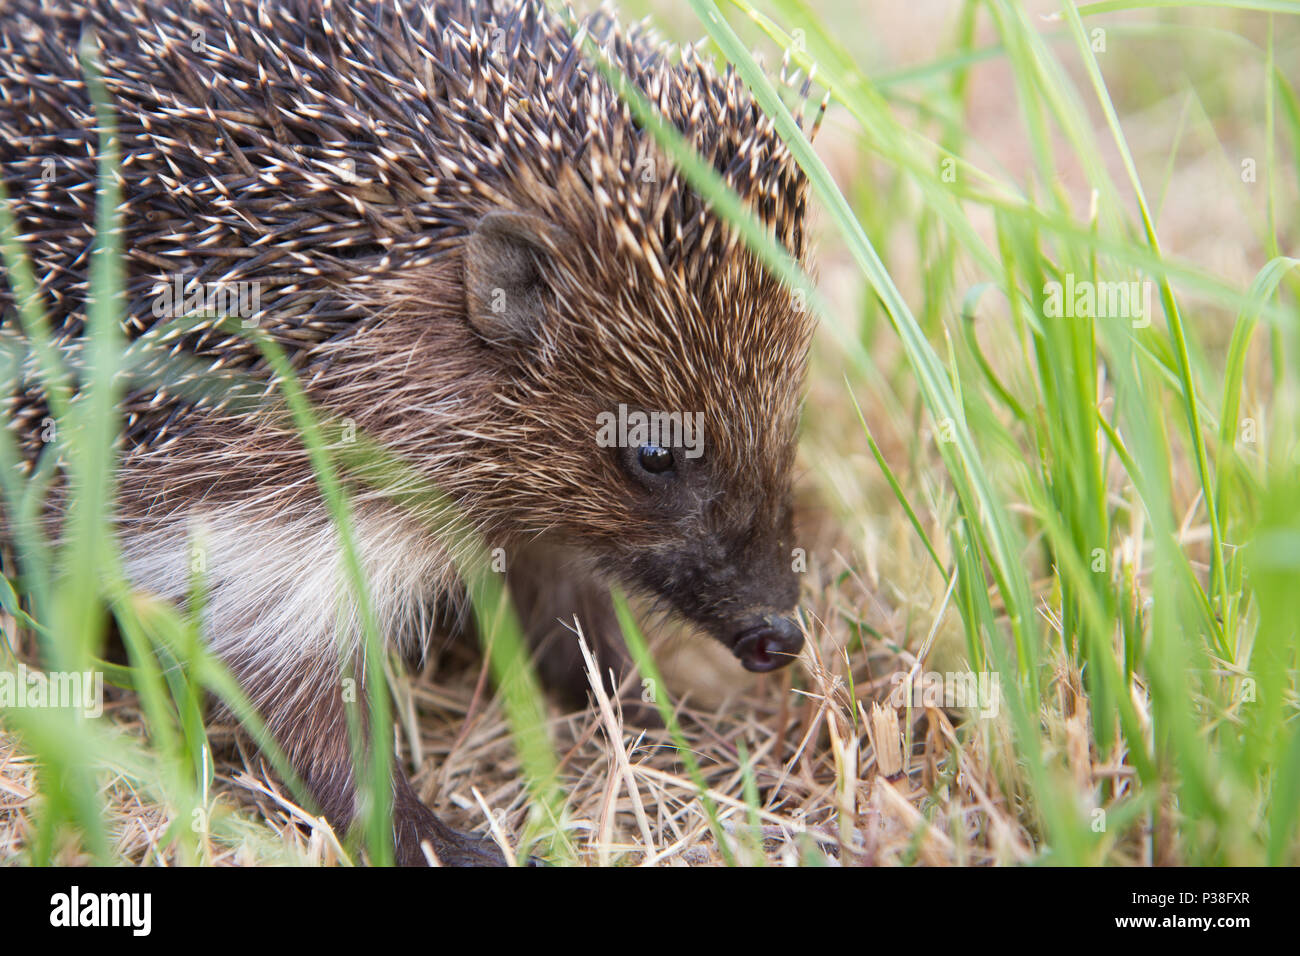 small wild hedgehog - Stock Image